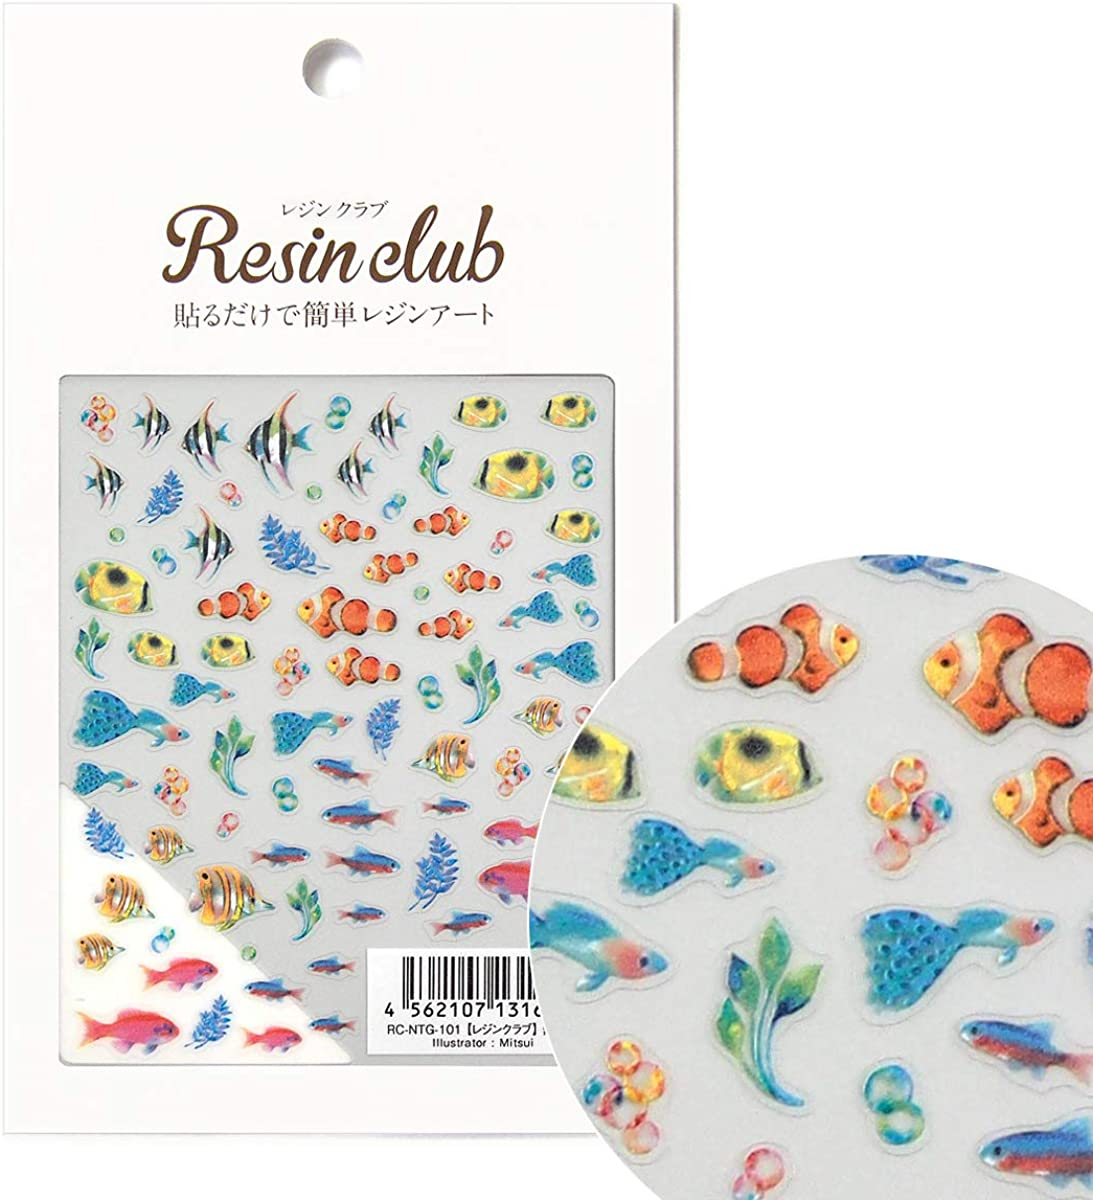 Resin club Tropical Fish (printed on both sides) stickers resin jewelry pendant earrings